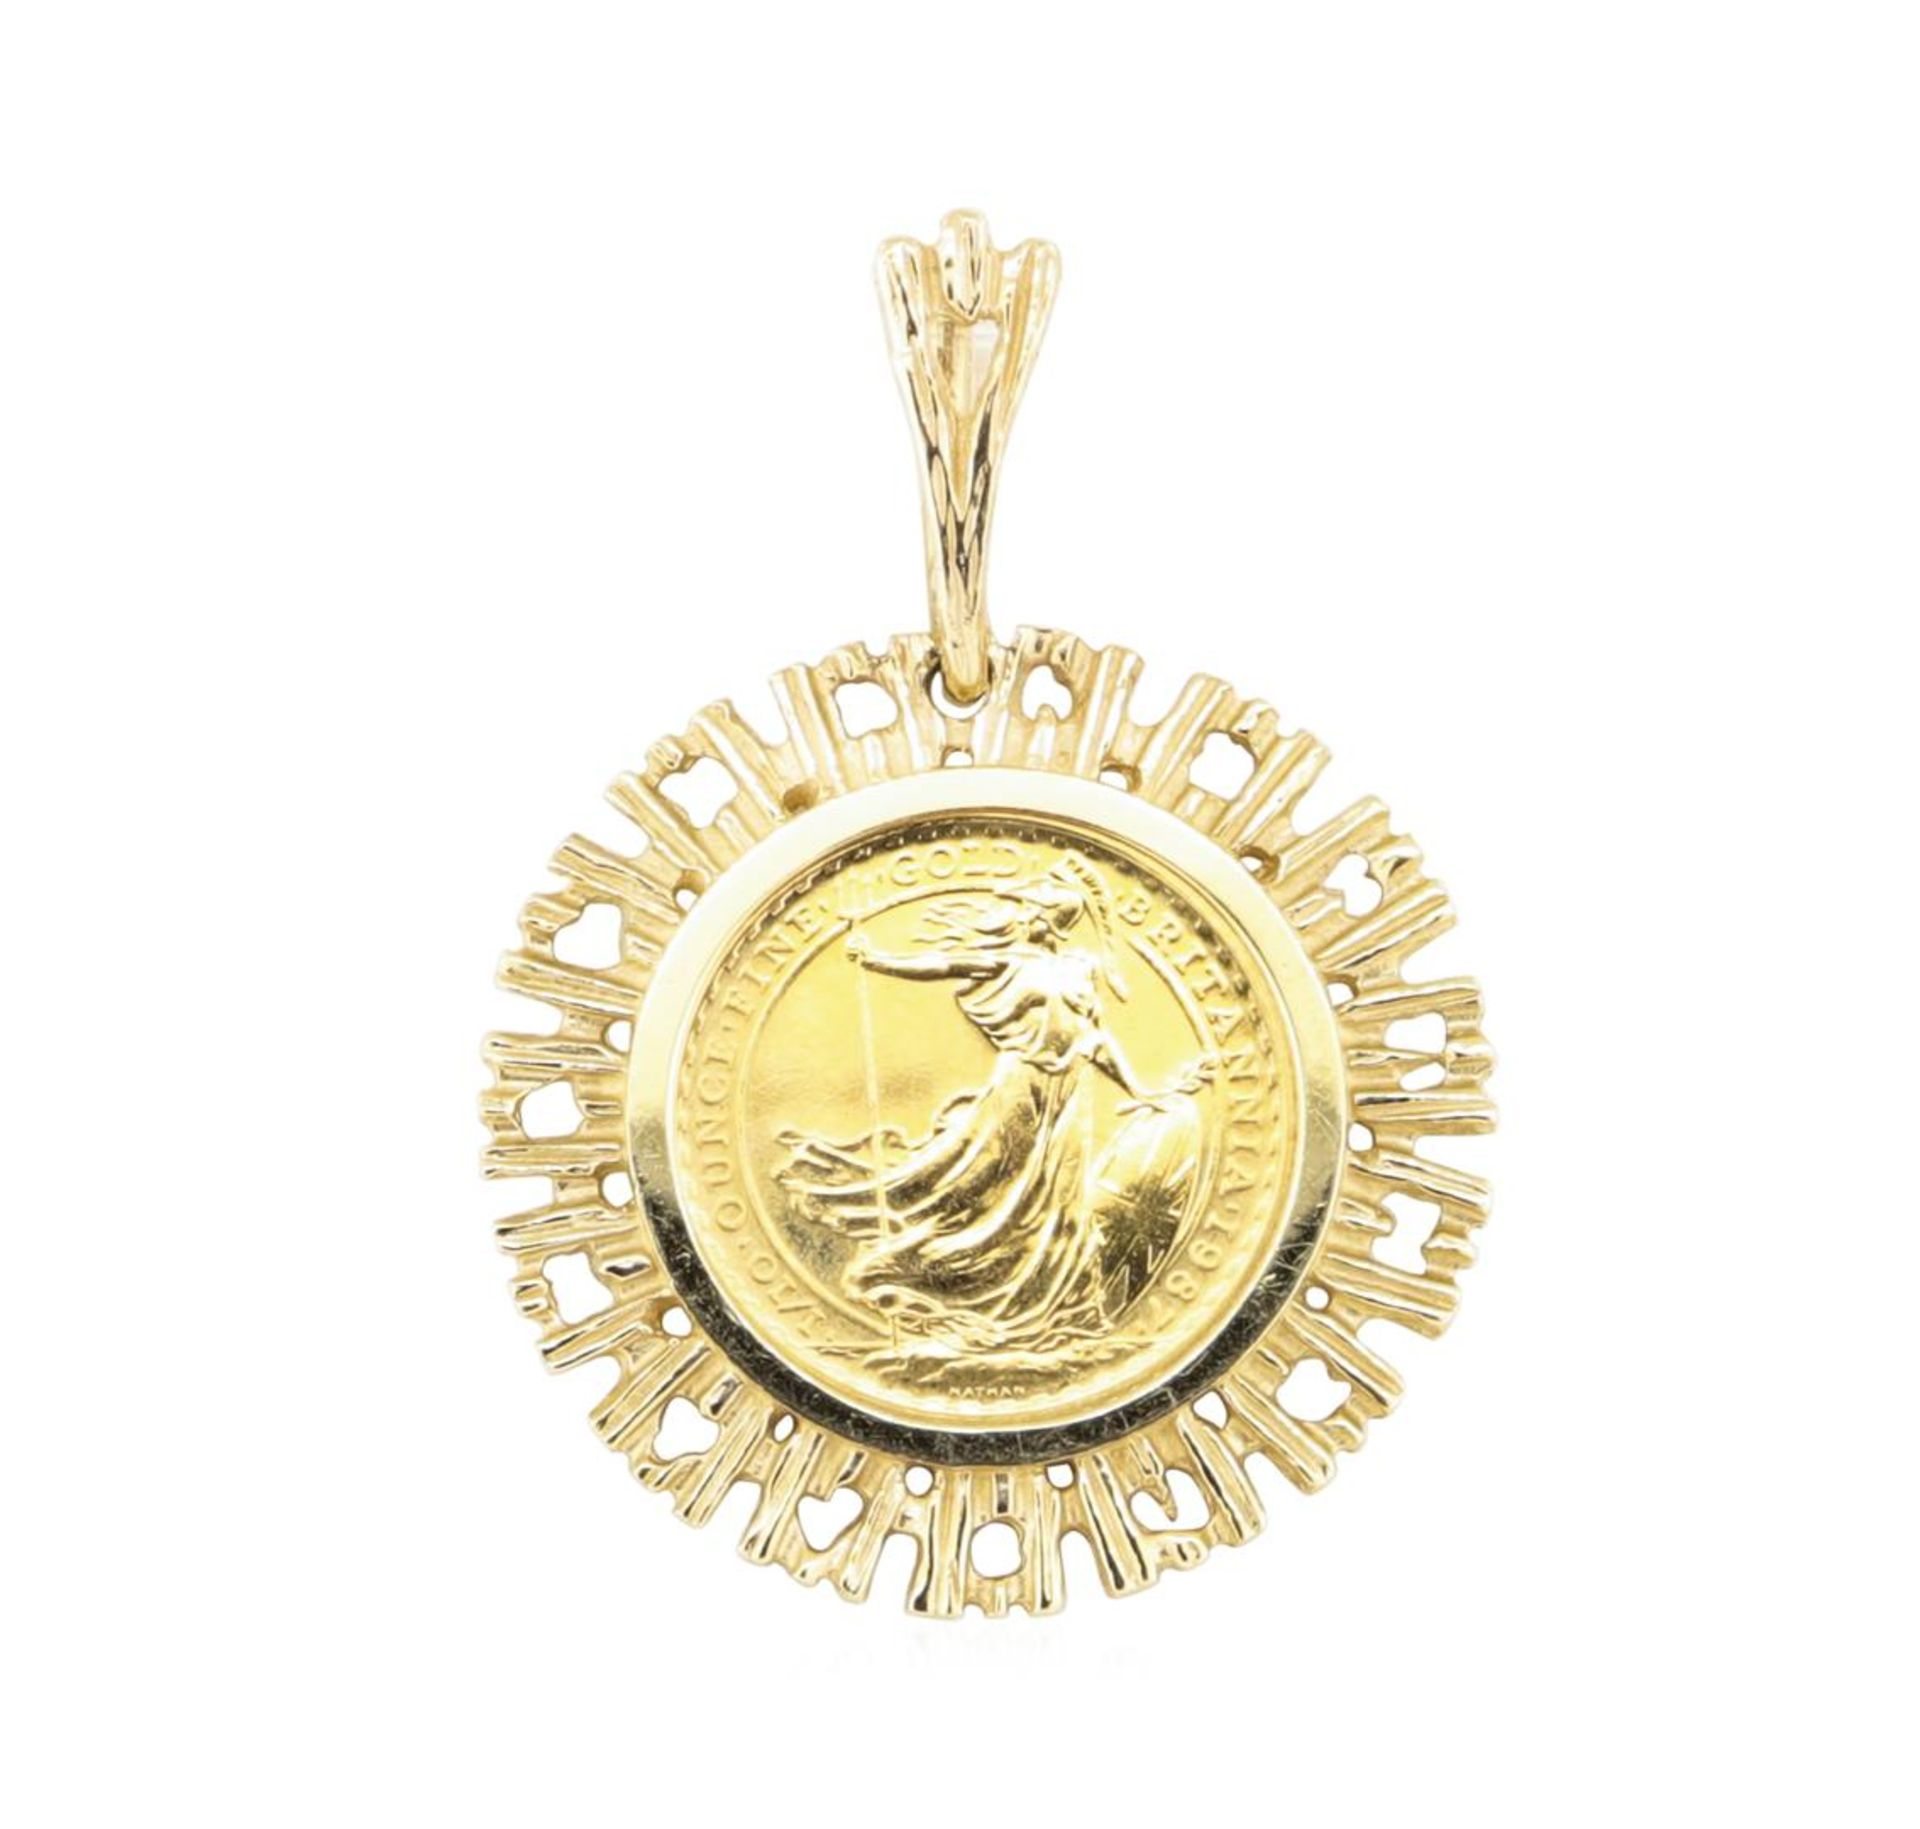 1/10th British Sovereign Coin Pendant - 14KT - 24KT Yellow Gold - Image 2 of 2